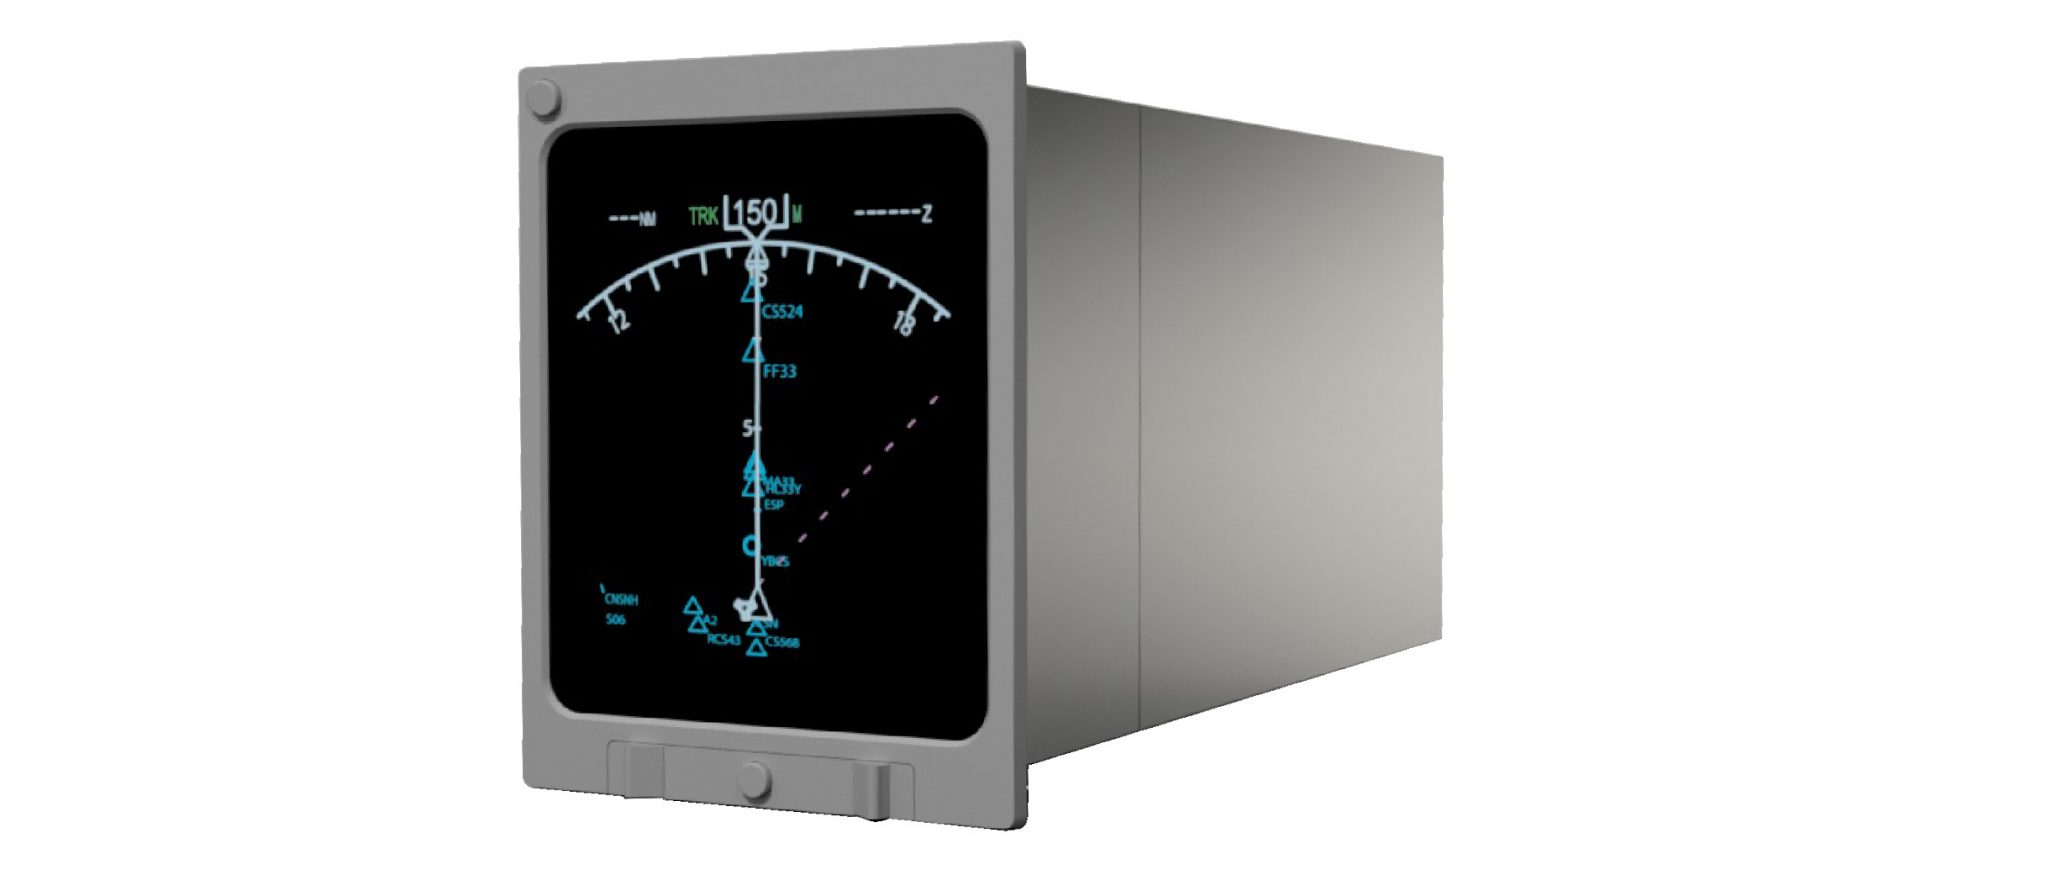 Thomas Global reveals new display solution for Bombardier CRJ Series and Pro Line 4 flight decks